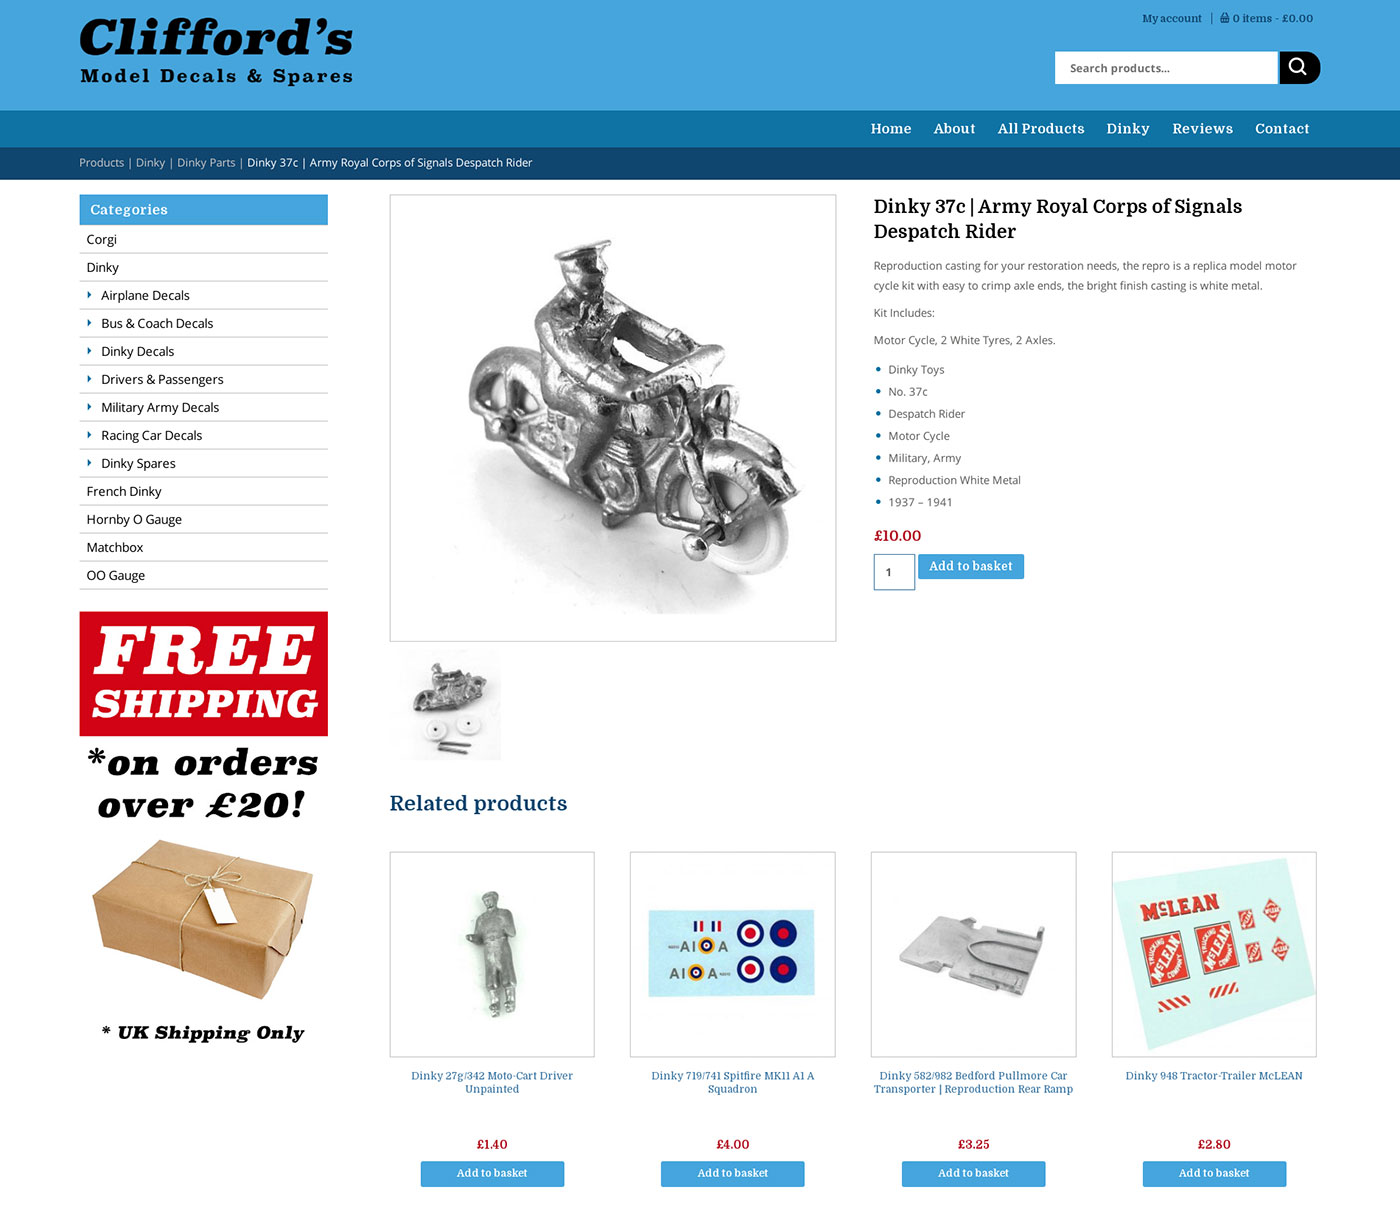 Clifford's Model Decals and Spares